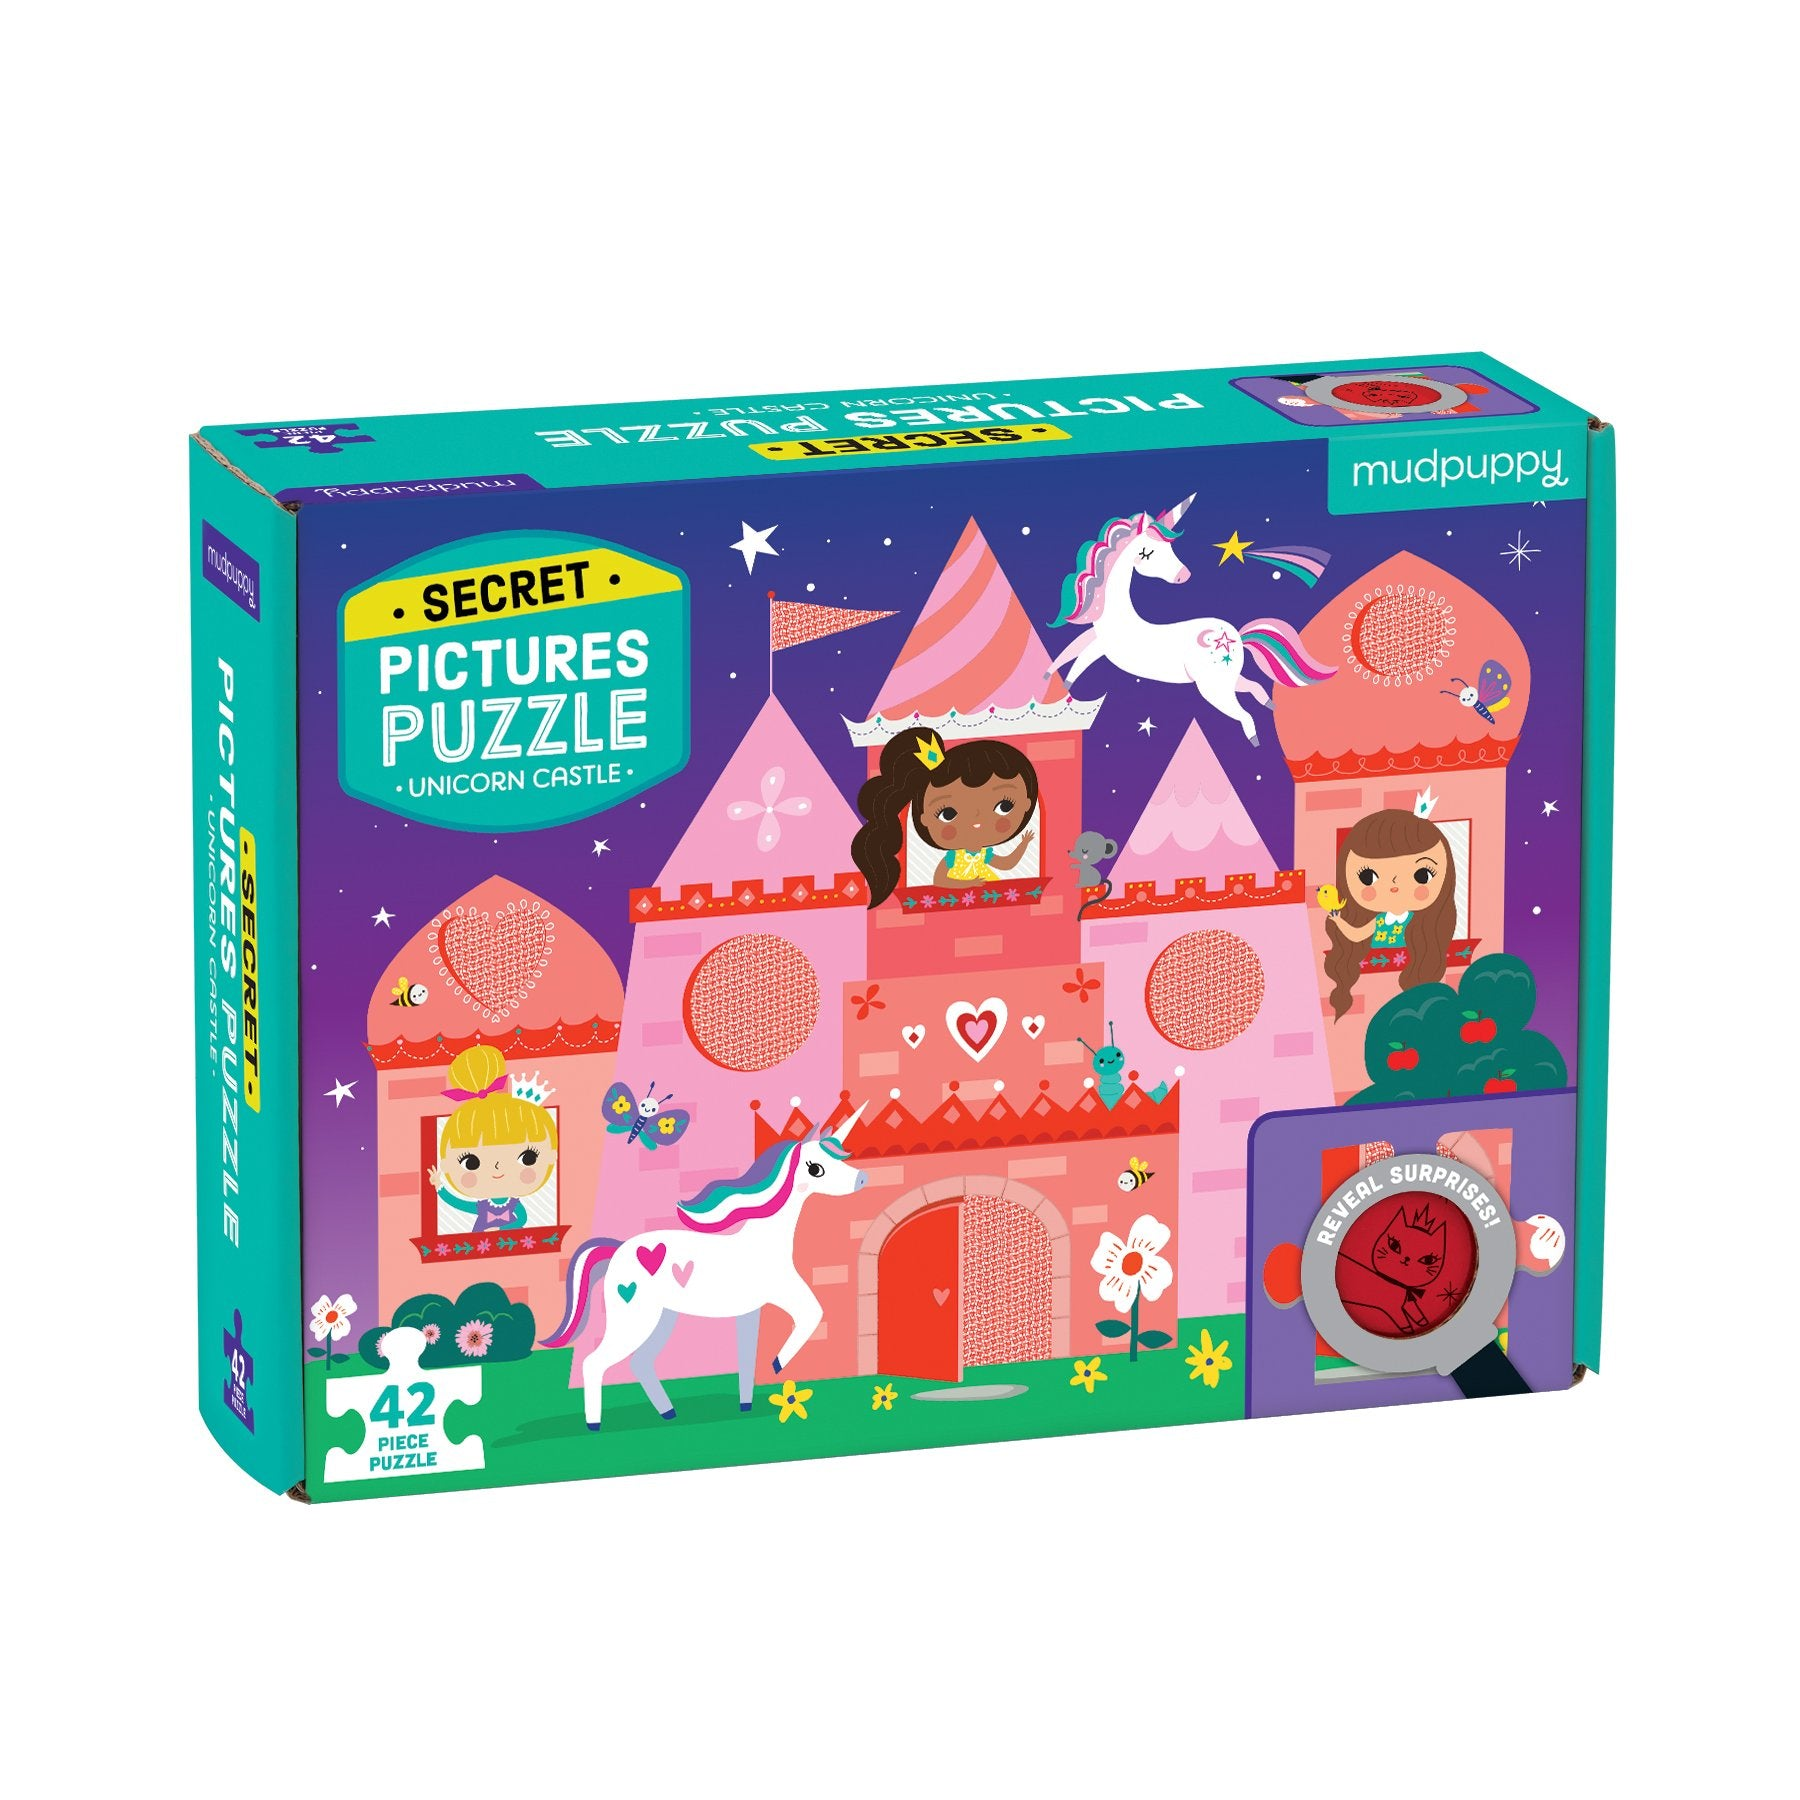 Mudpuppy Secret Pictures Puzzle Mudpuppy Puzzles Unicorn Castle at Little Earth Nest Eco Shop